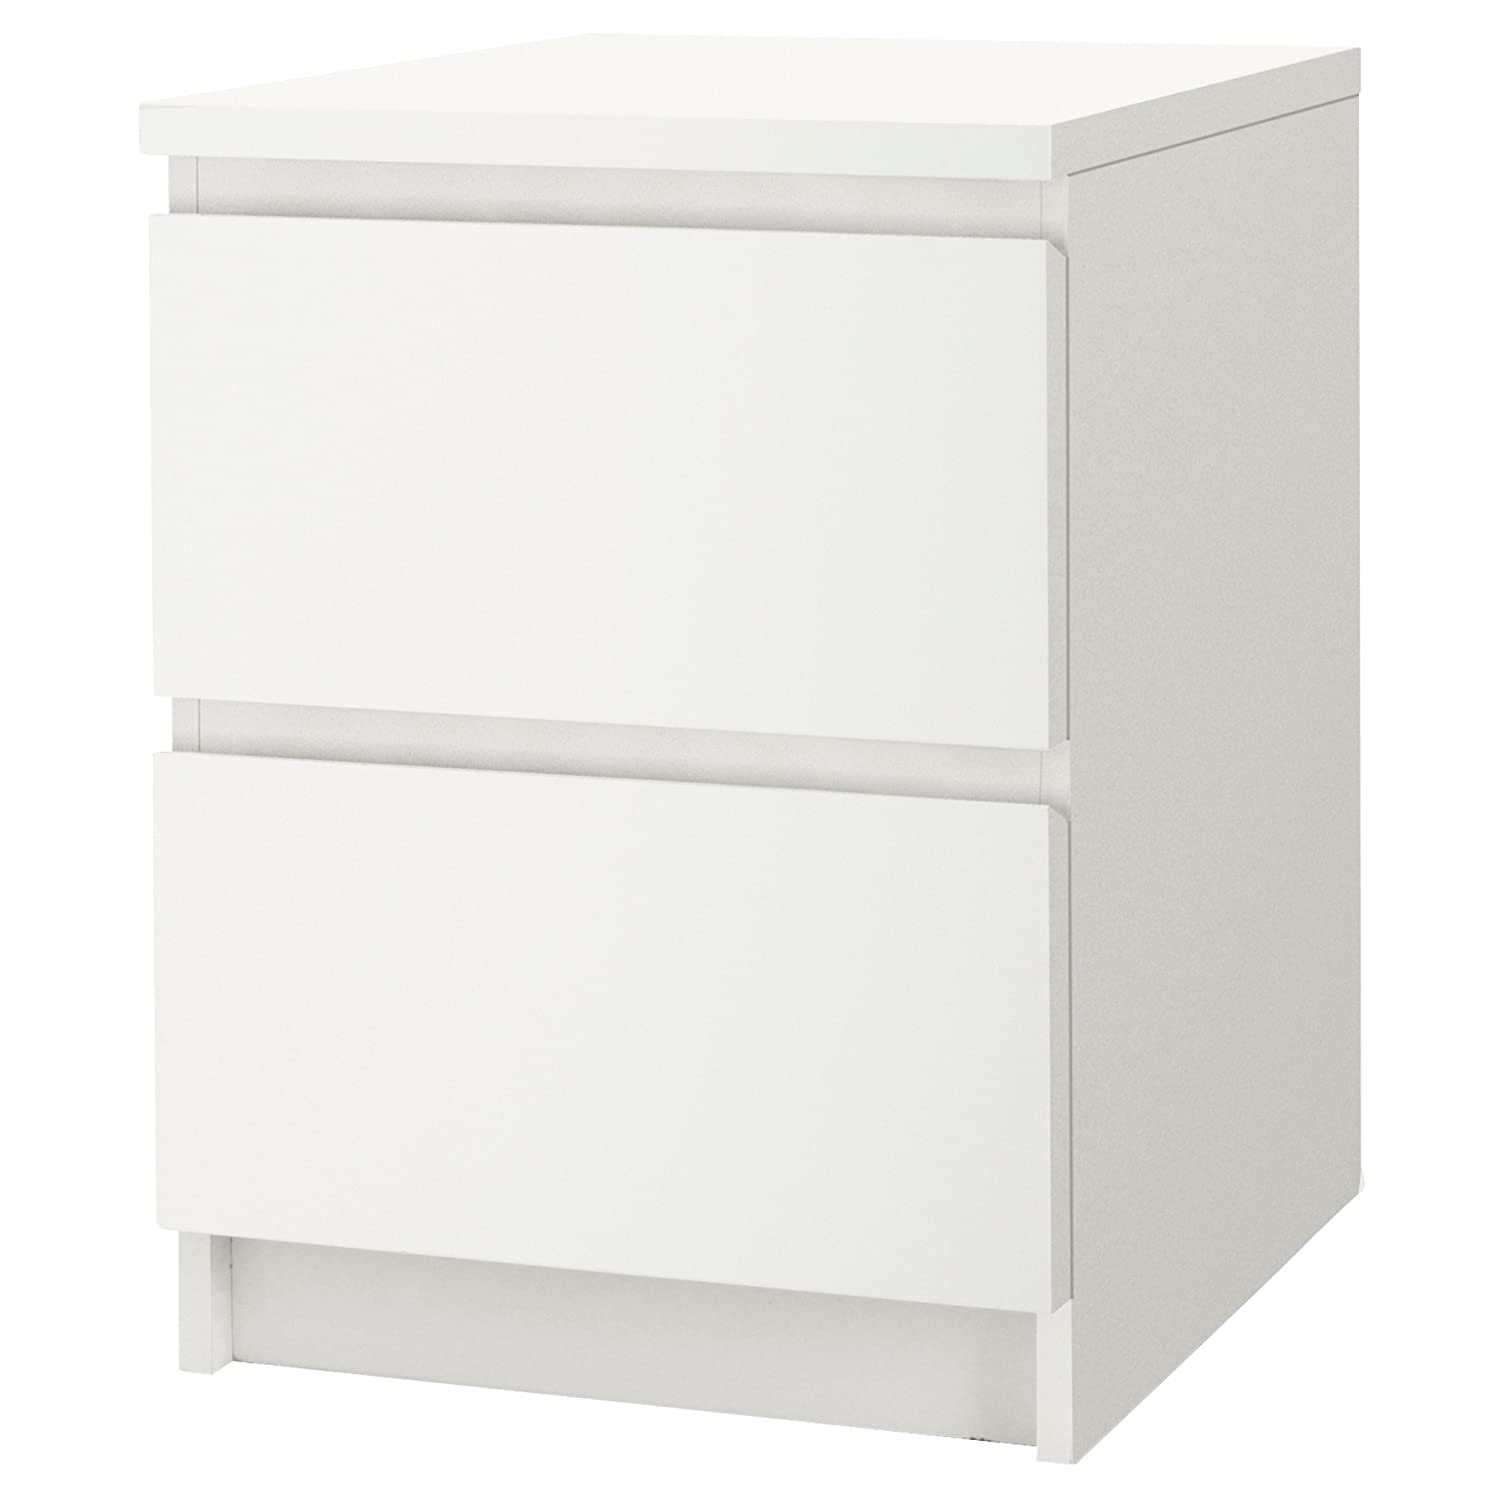 Kommode schmal ikea  Kommoden & Sideboards | Amazon.de